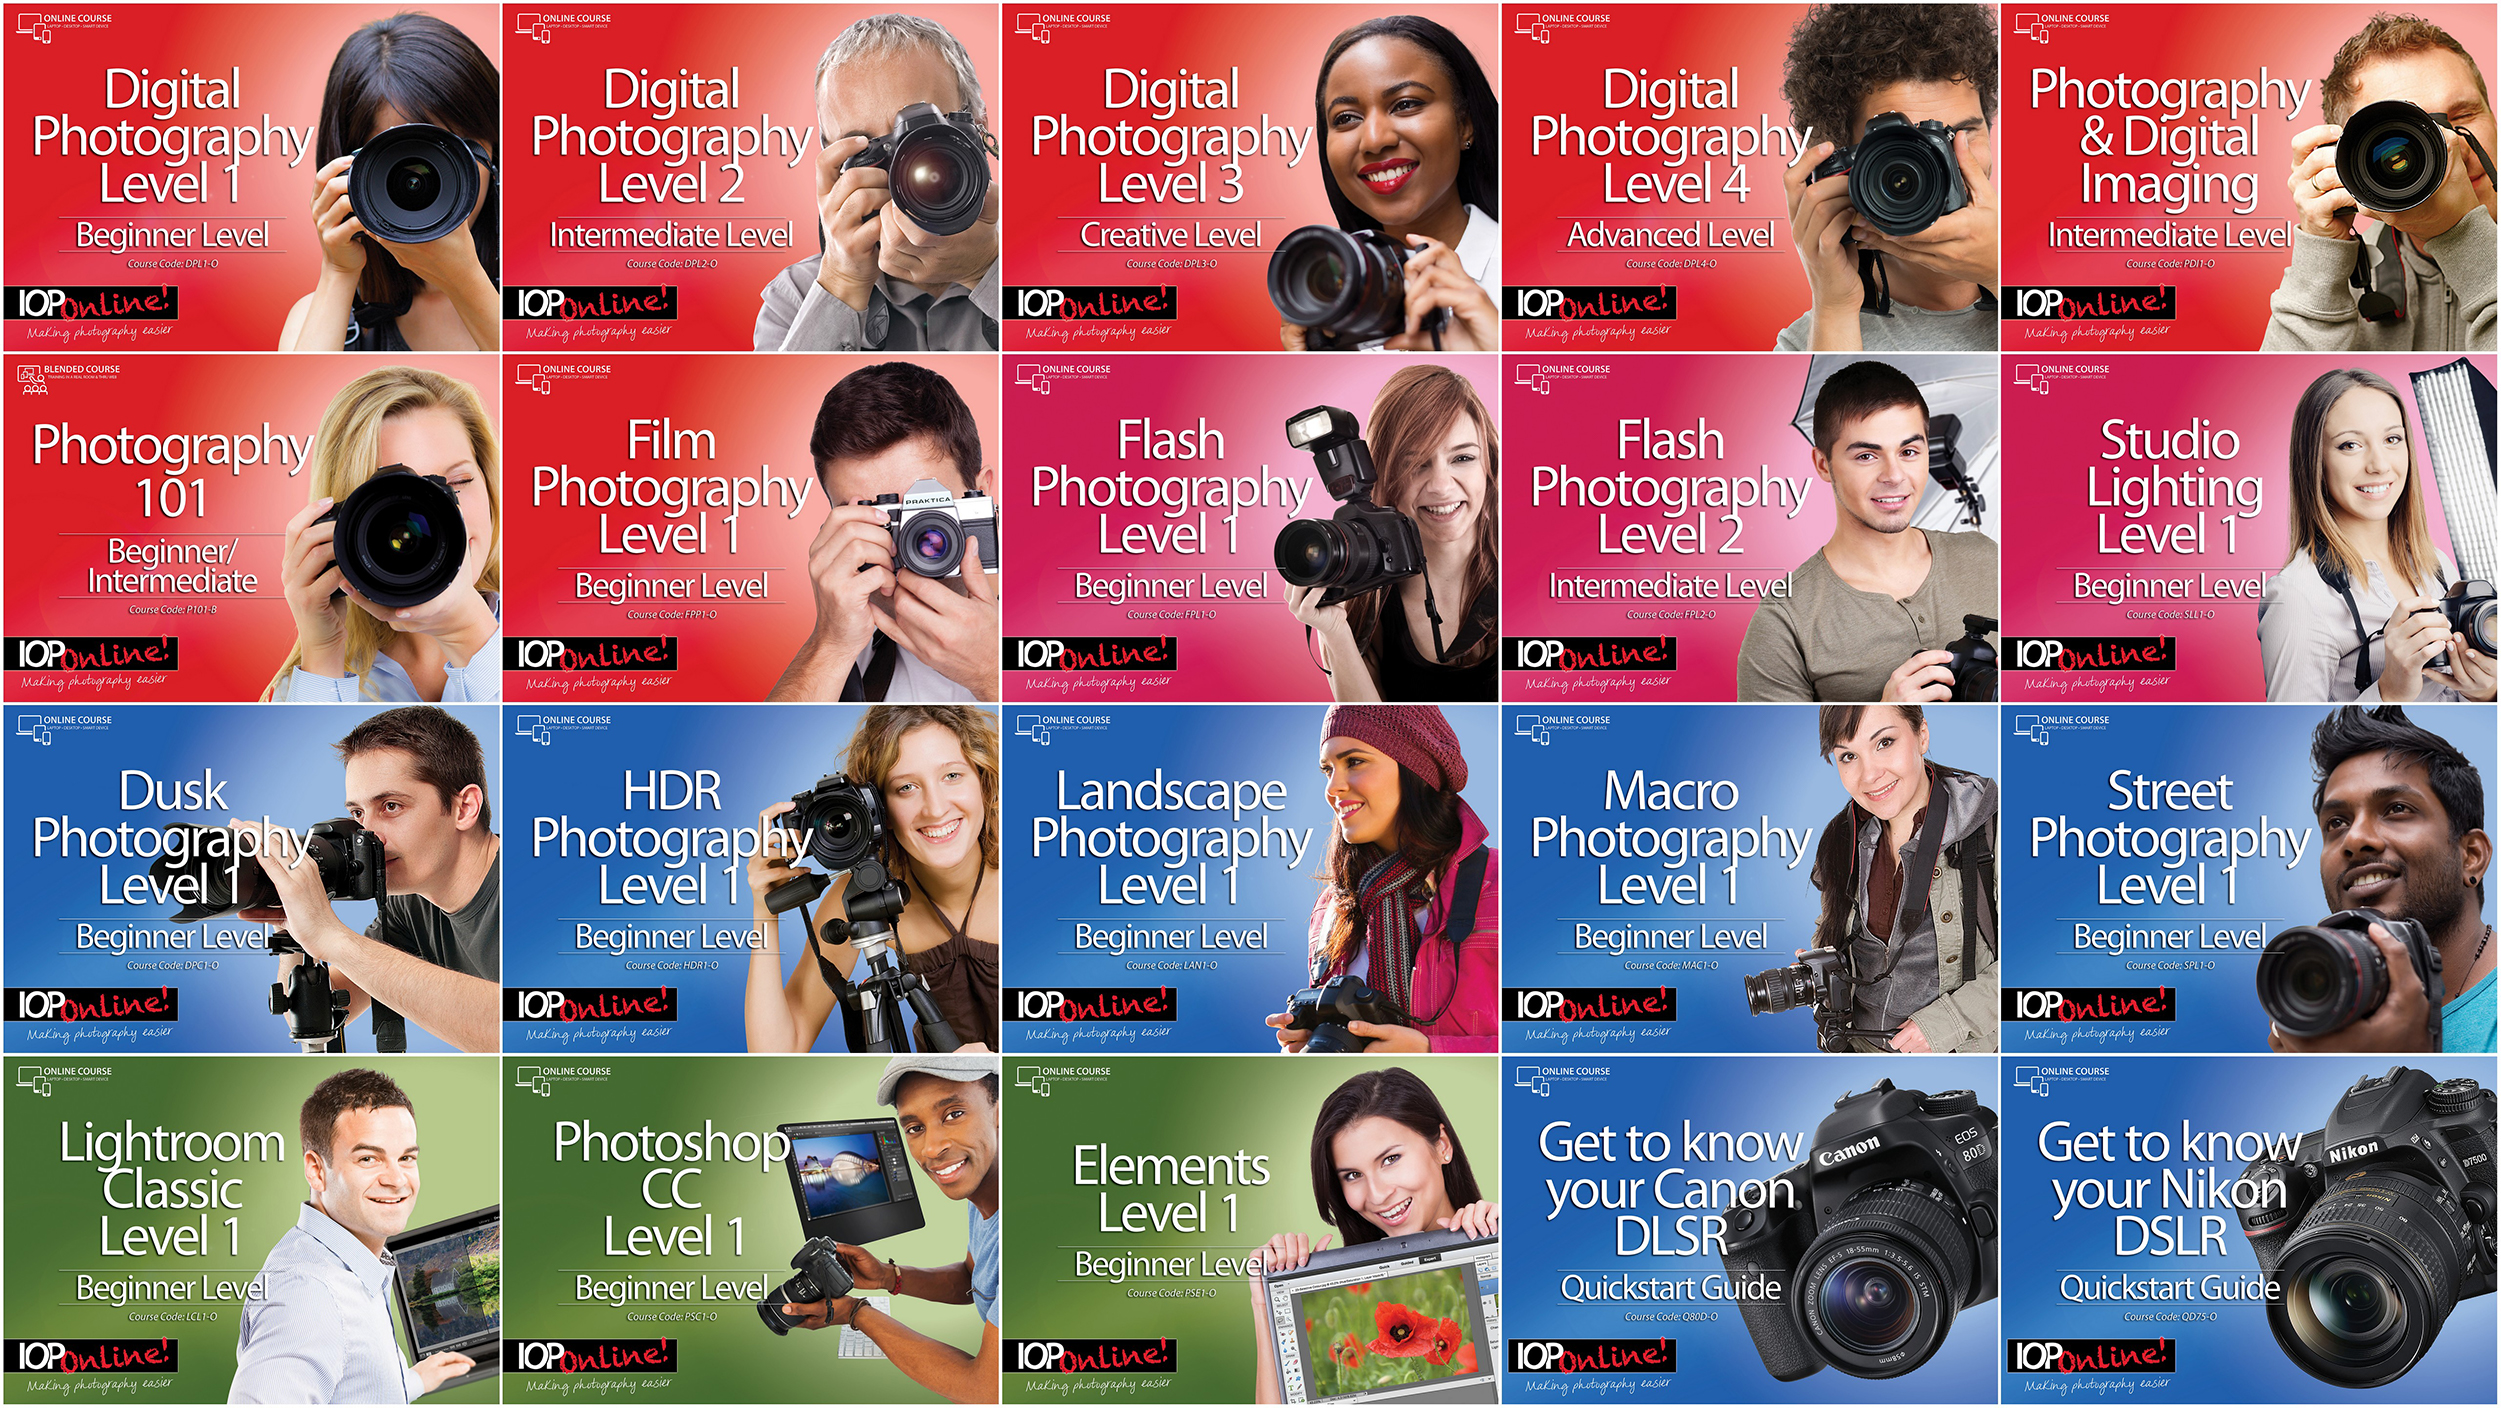 The full list of IOP Online photography and software courses